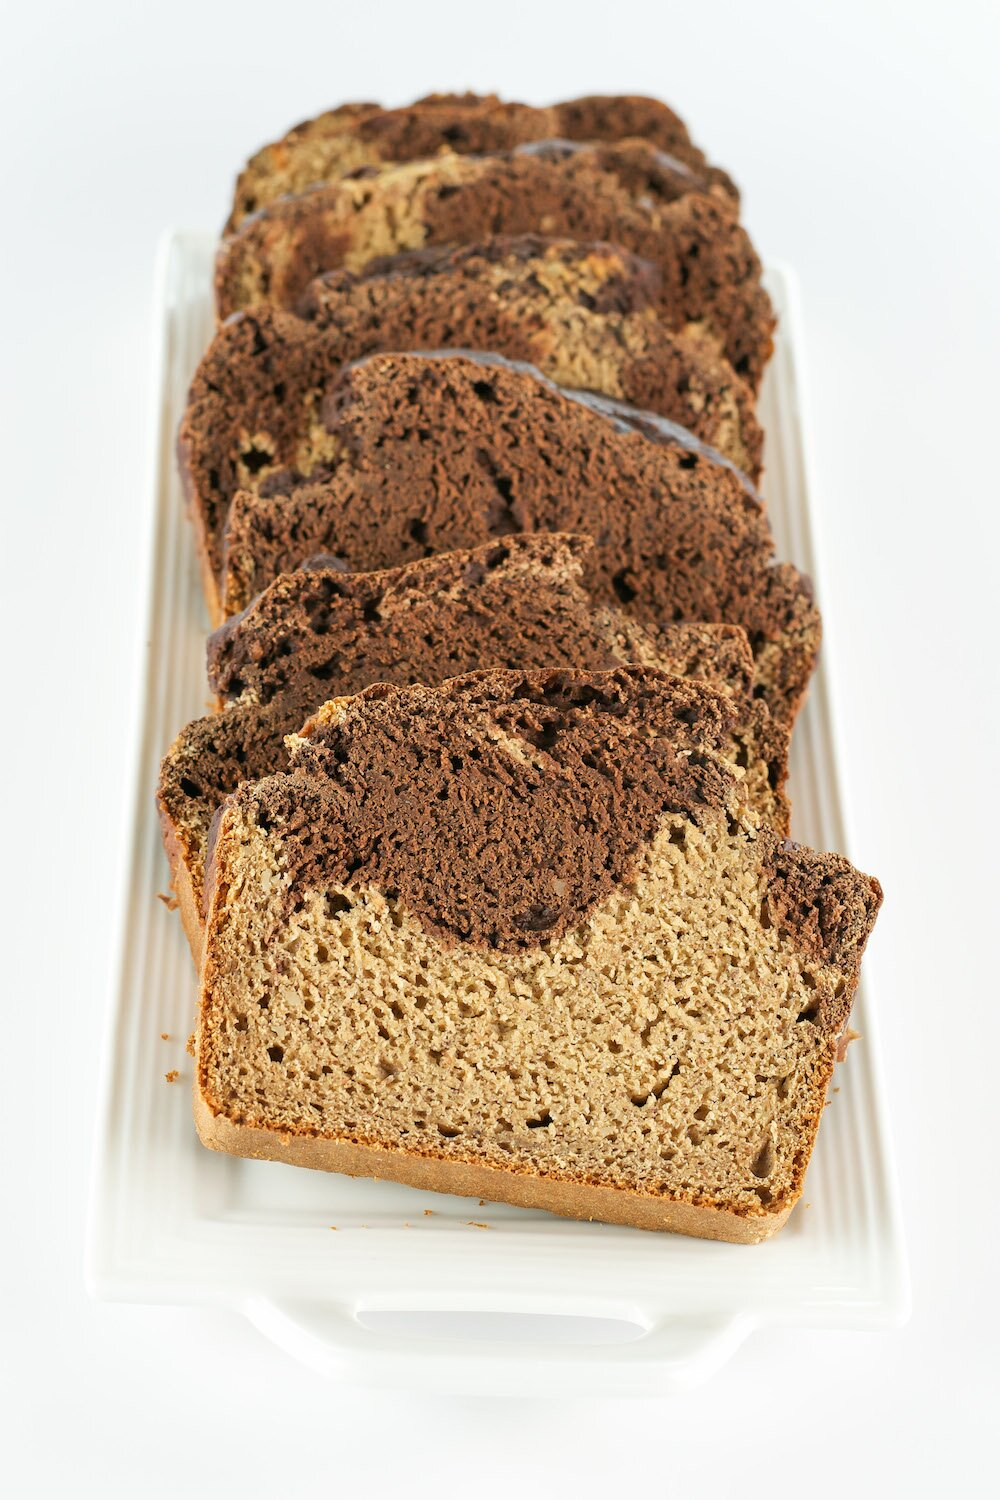 Sugar-free Vegan Marbled Banana Bread + NuNaturals Int'l Giveaway!